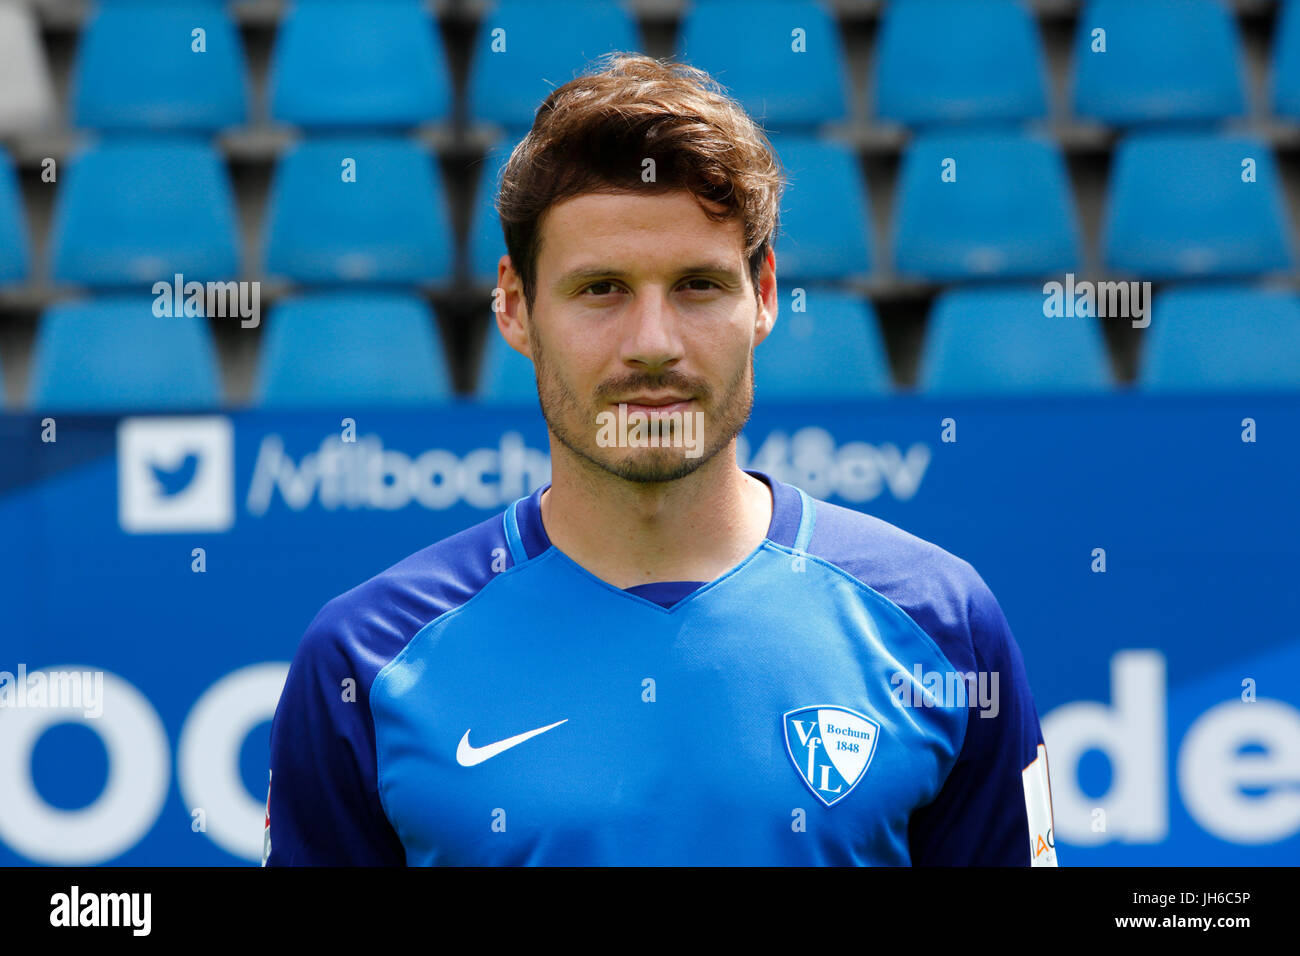 football, 2. Bundesliga, 2017/2018, VfL Bochum, team presentation for the game season, Stefano Celozzi - Stock Image